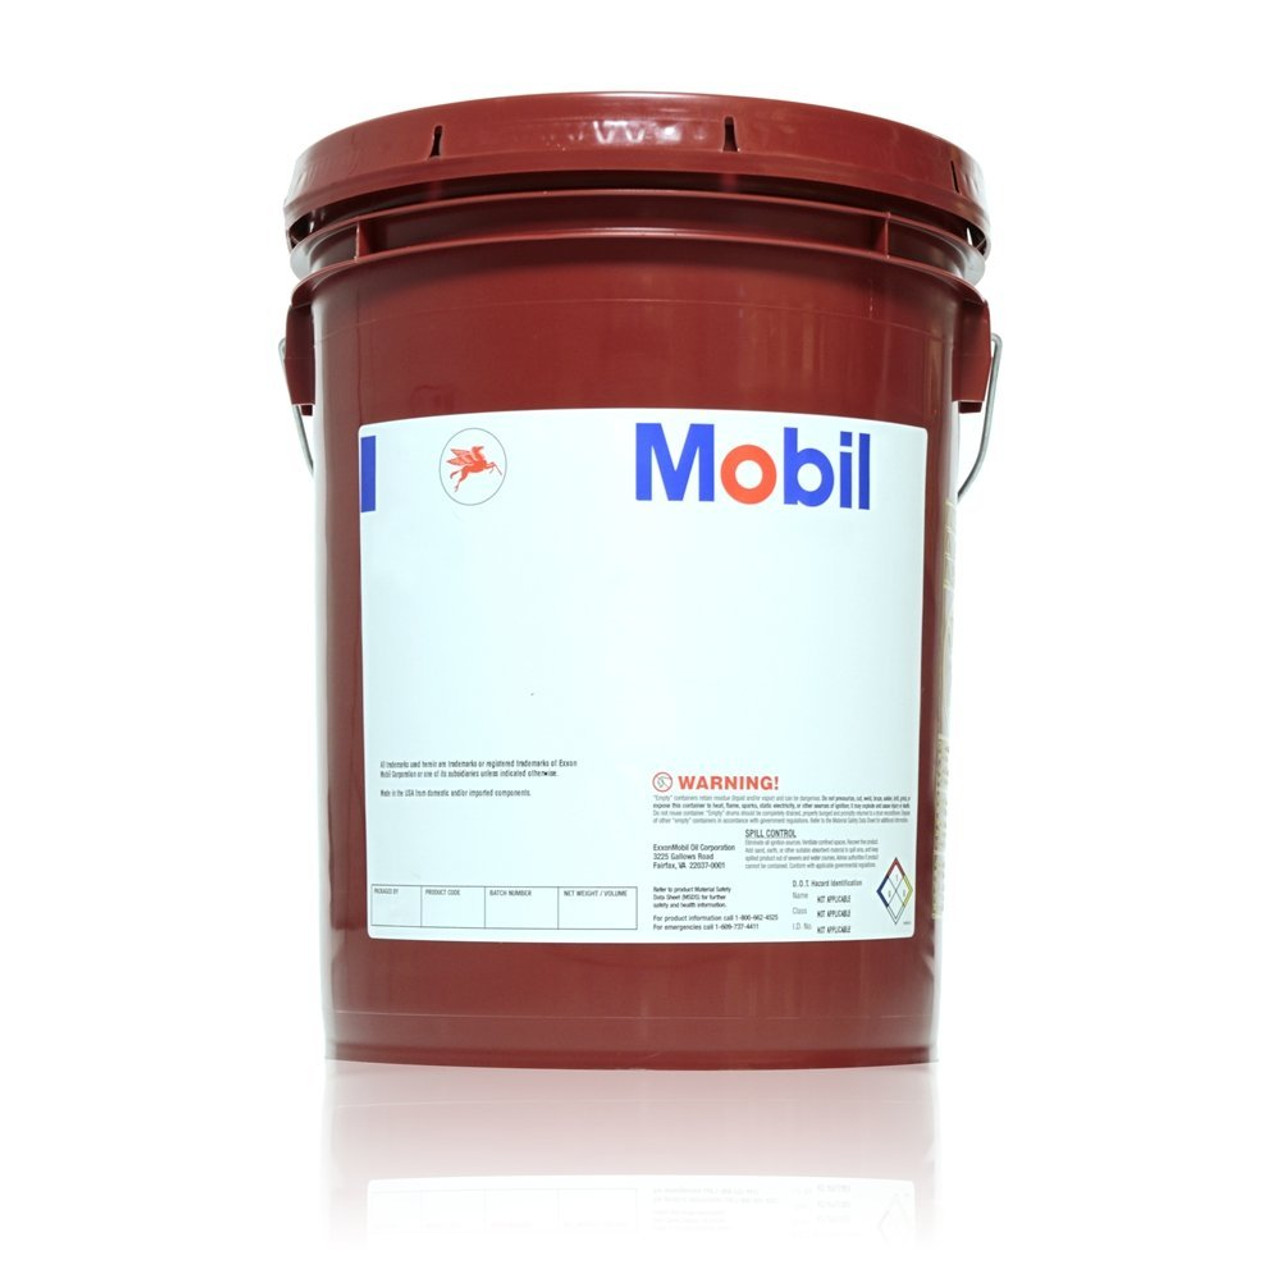 Mobil Vactra™ 2 Way and Slide Lubricant - 5 Gallon Pail